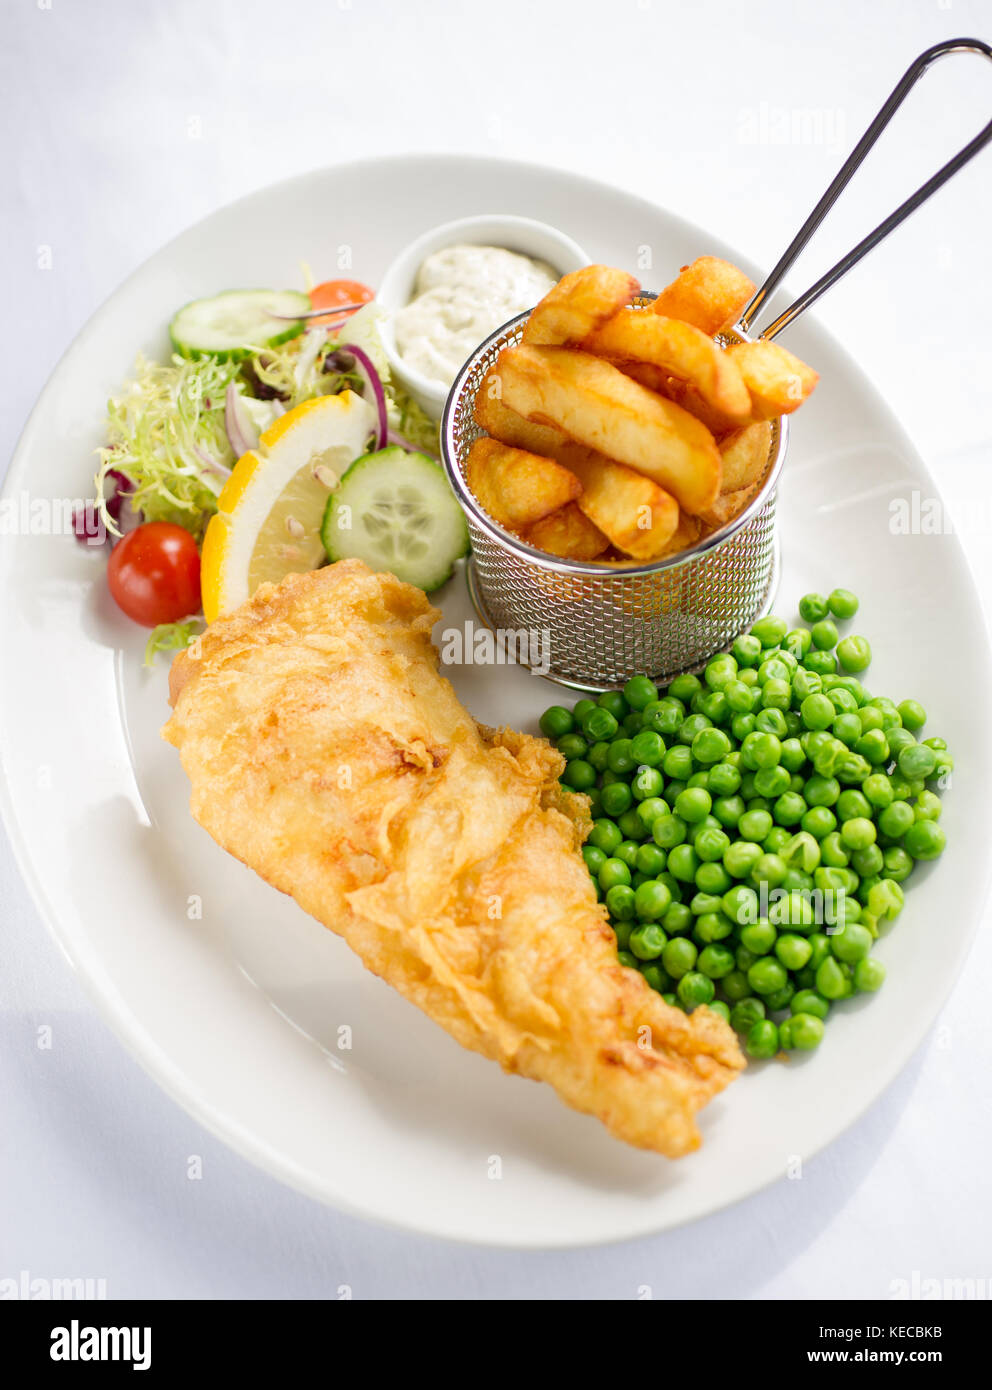 how to cook fish and chips